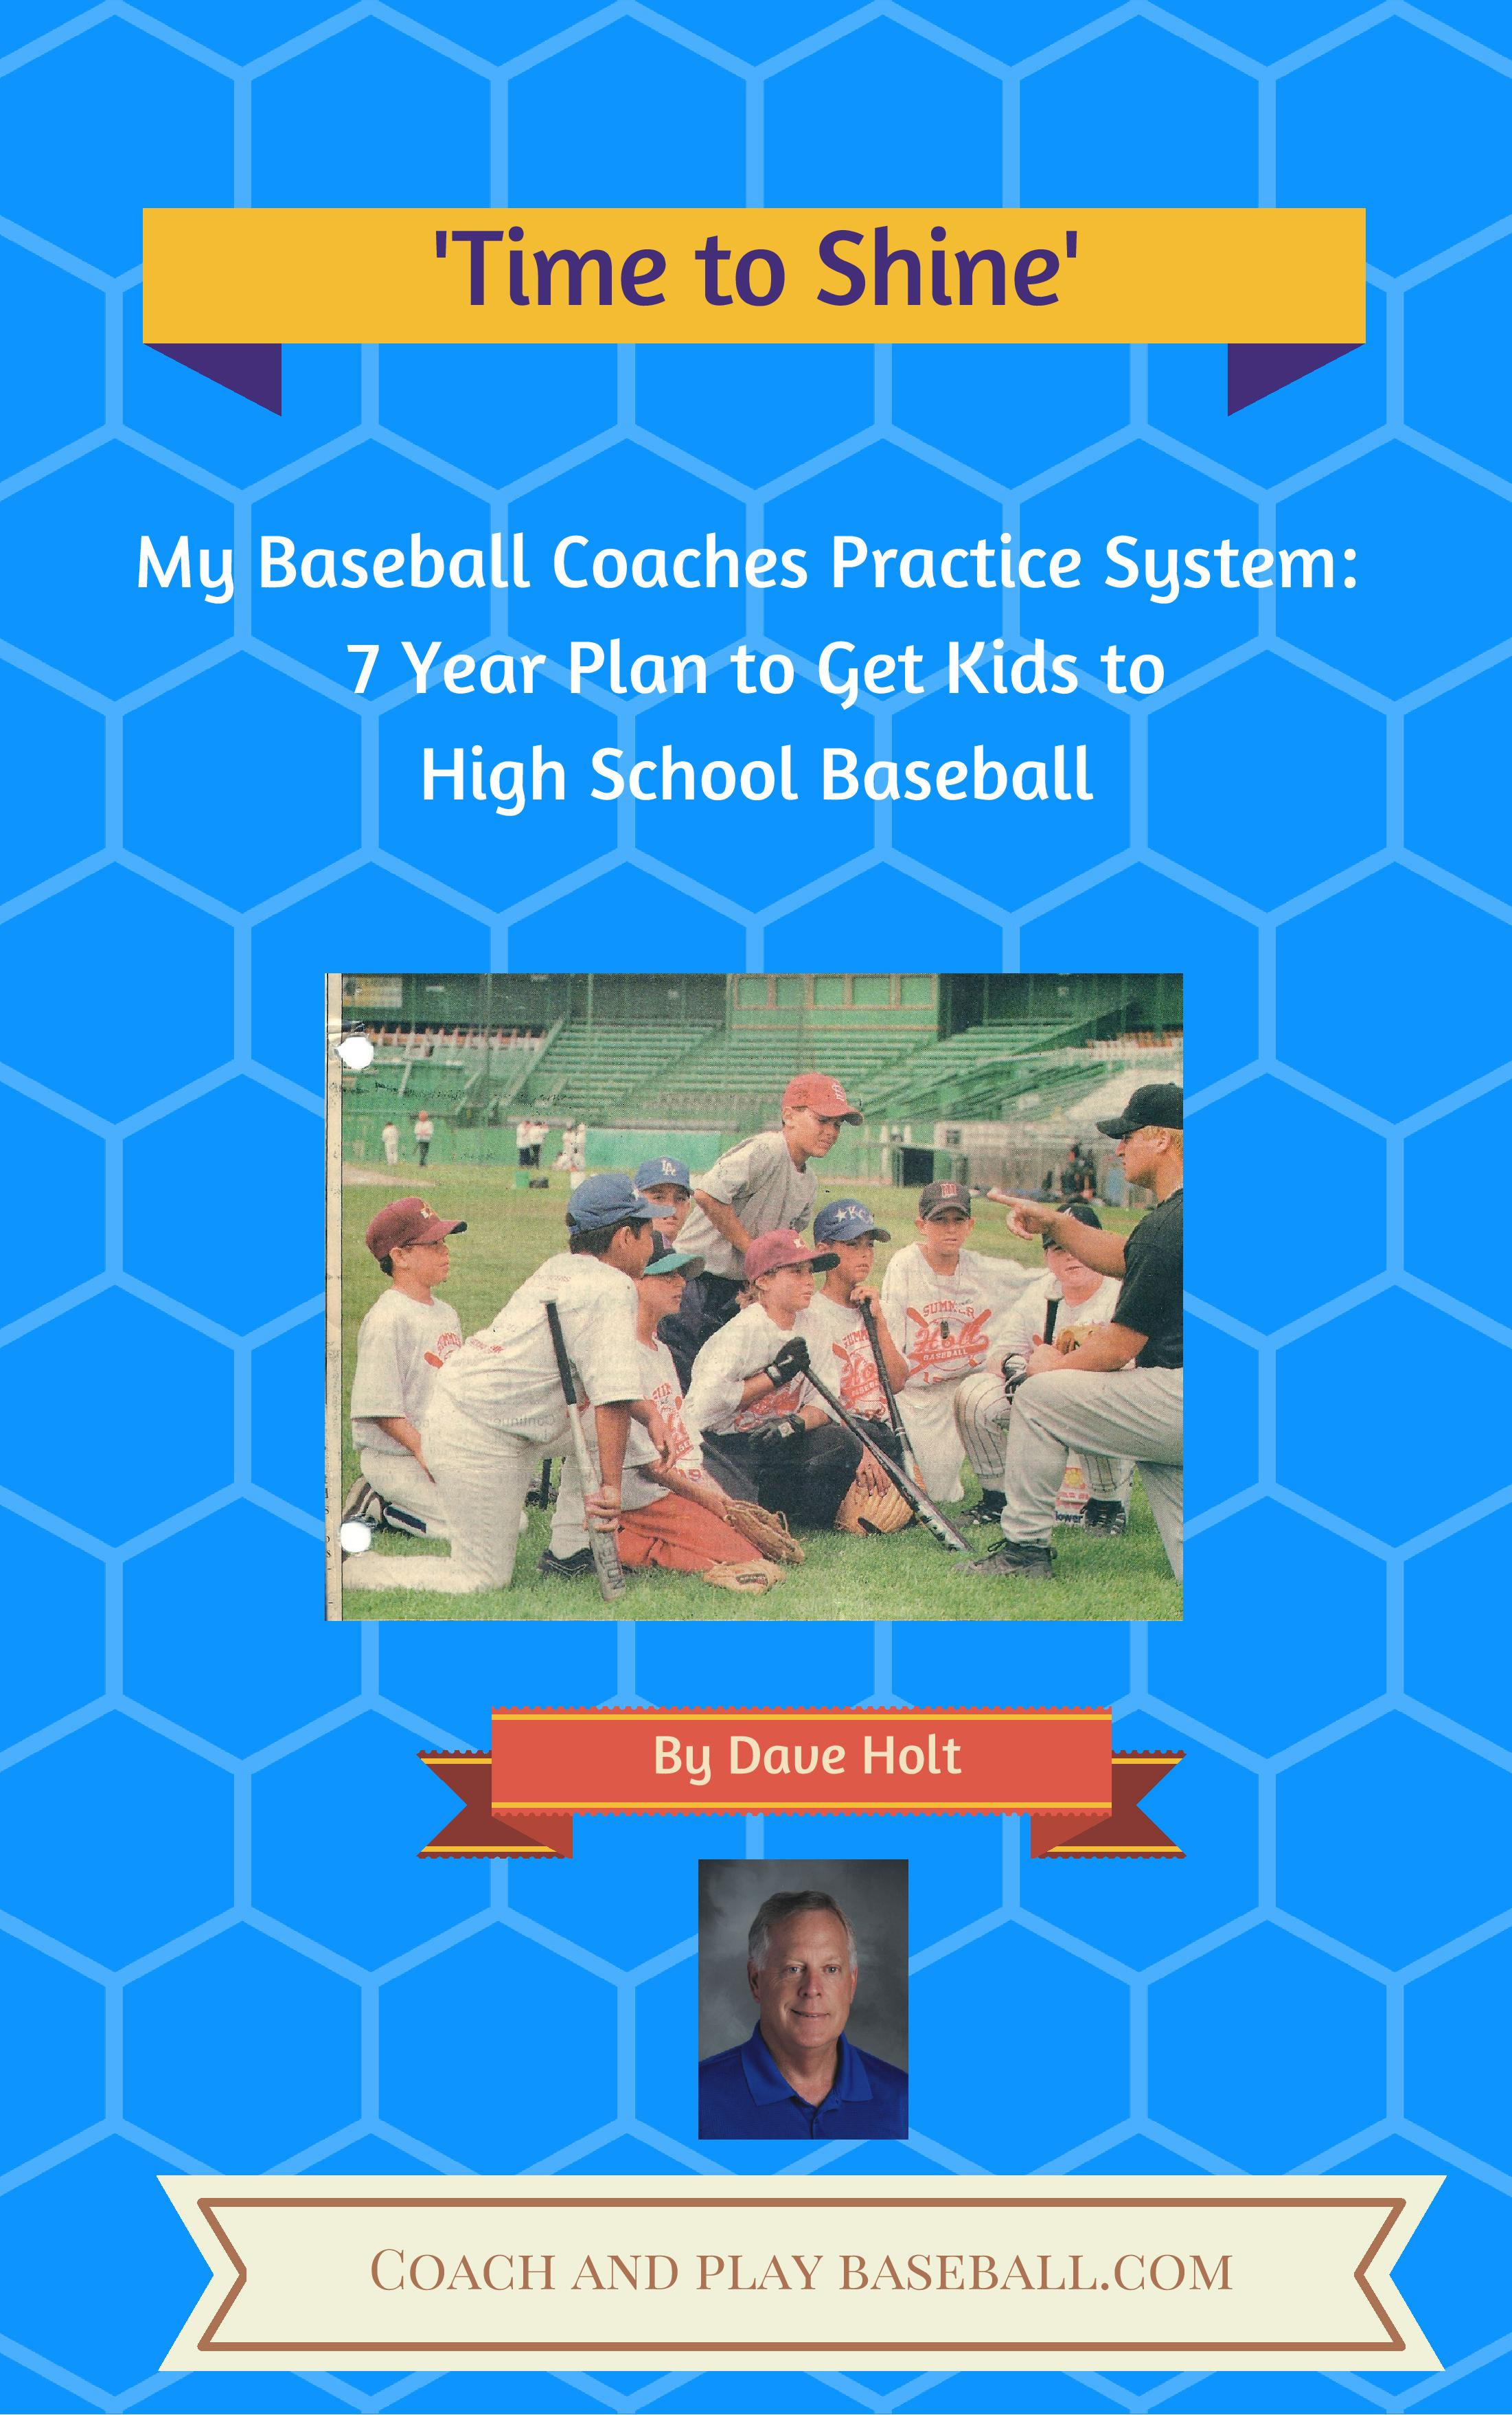 'Time to Shine' My baseball coaches practice system to help kids reach High School baseball